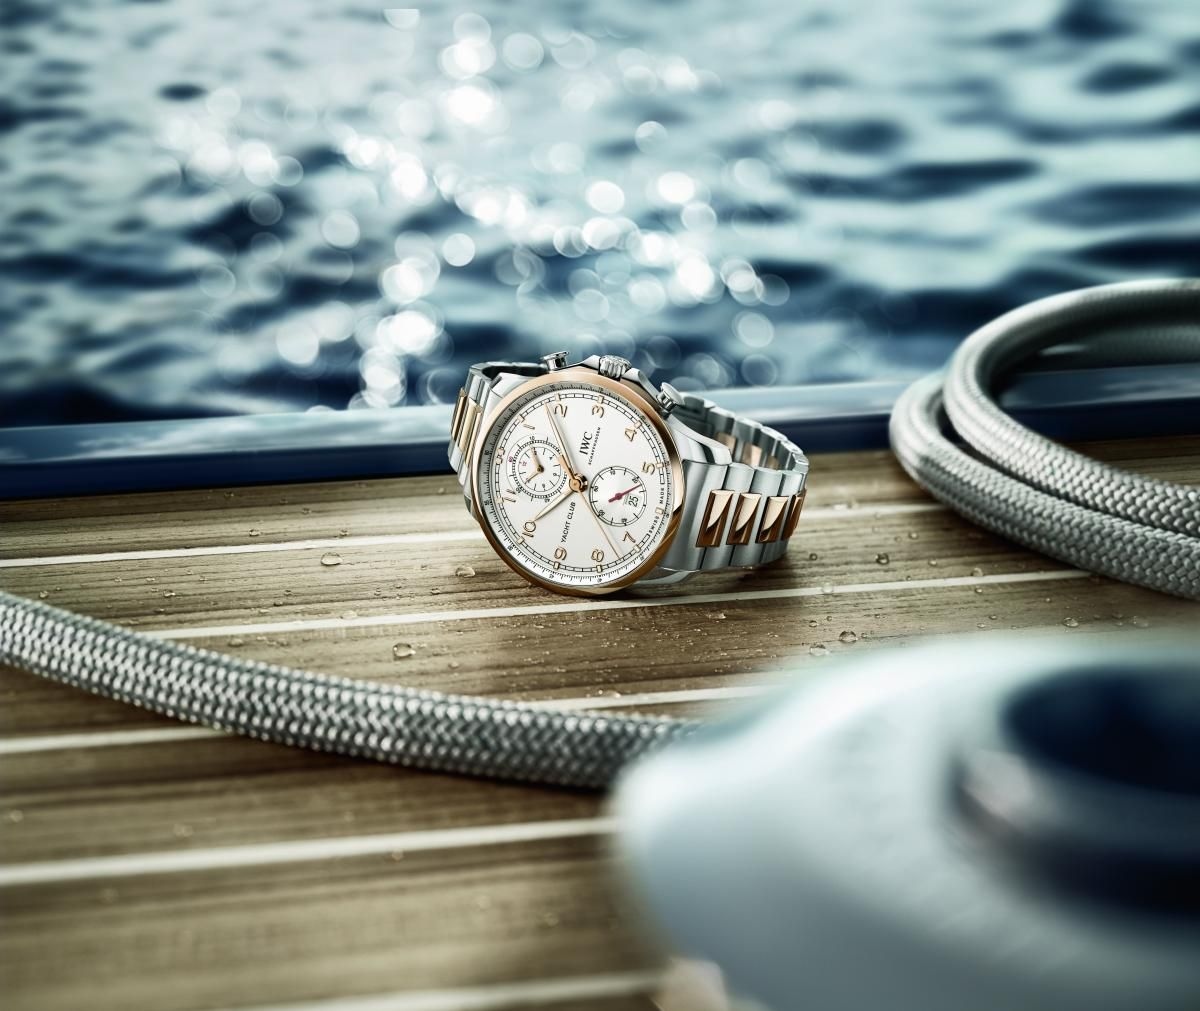 New IWC Portugieser Yacht Club Chronograph Watches for 2020